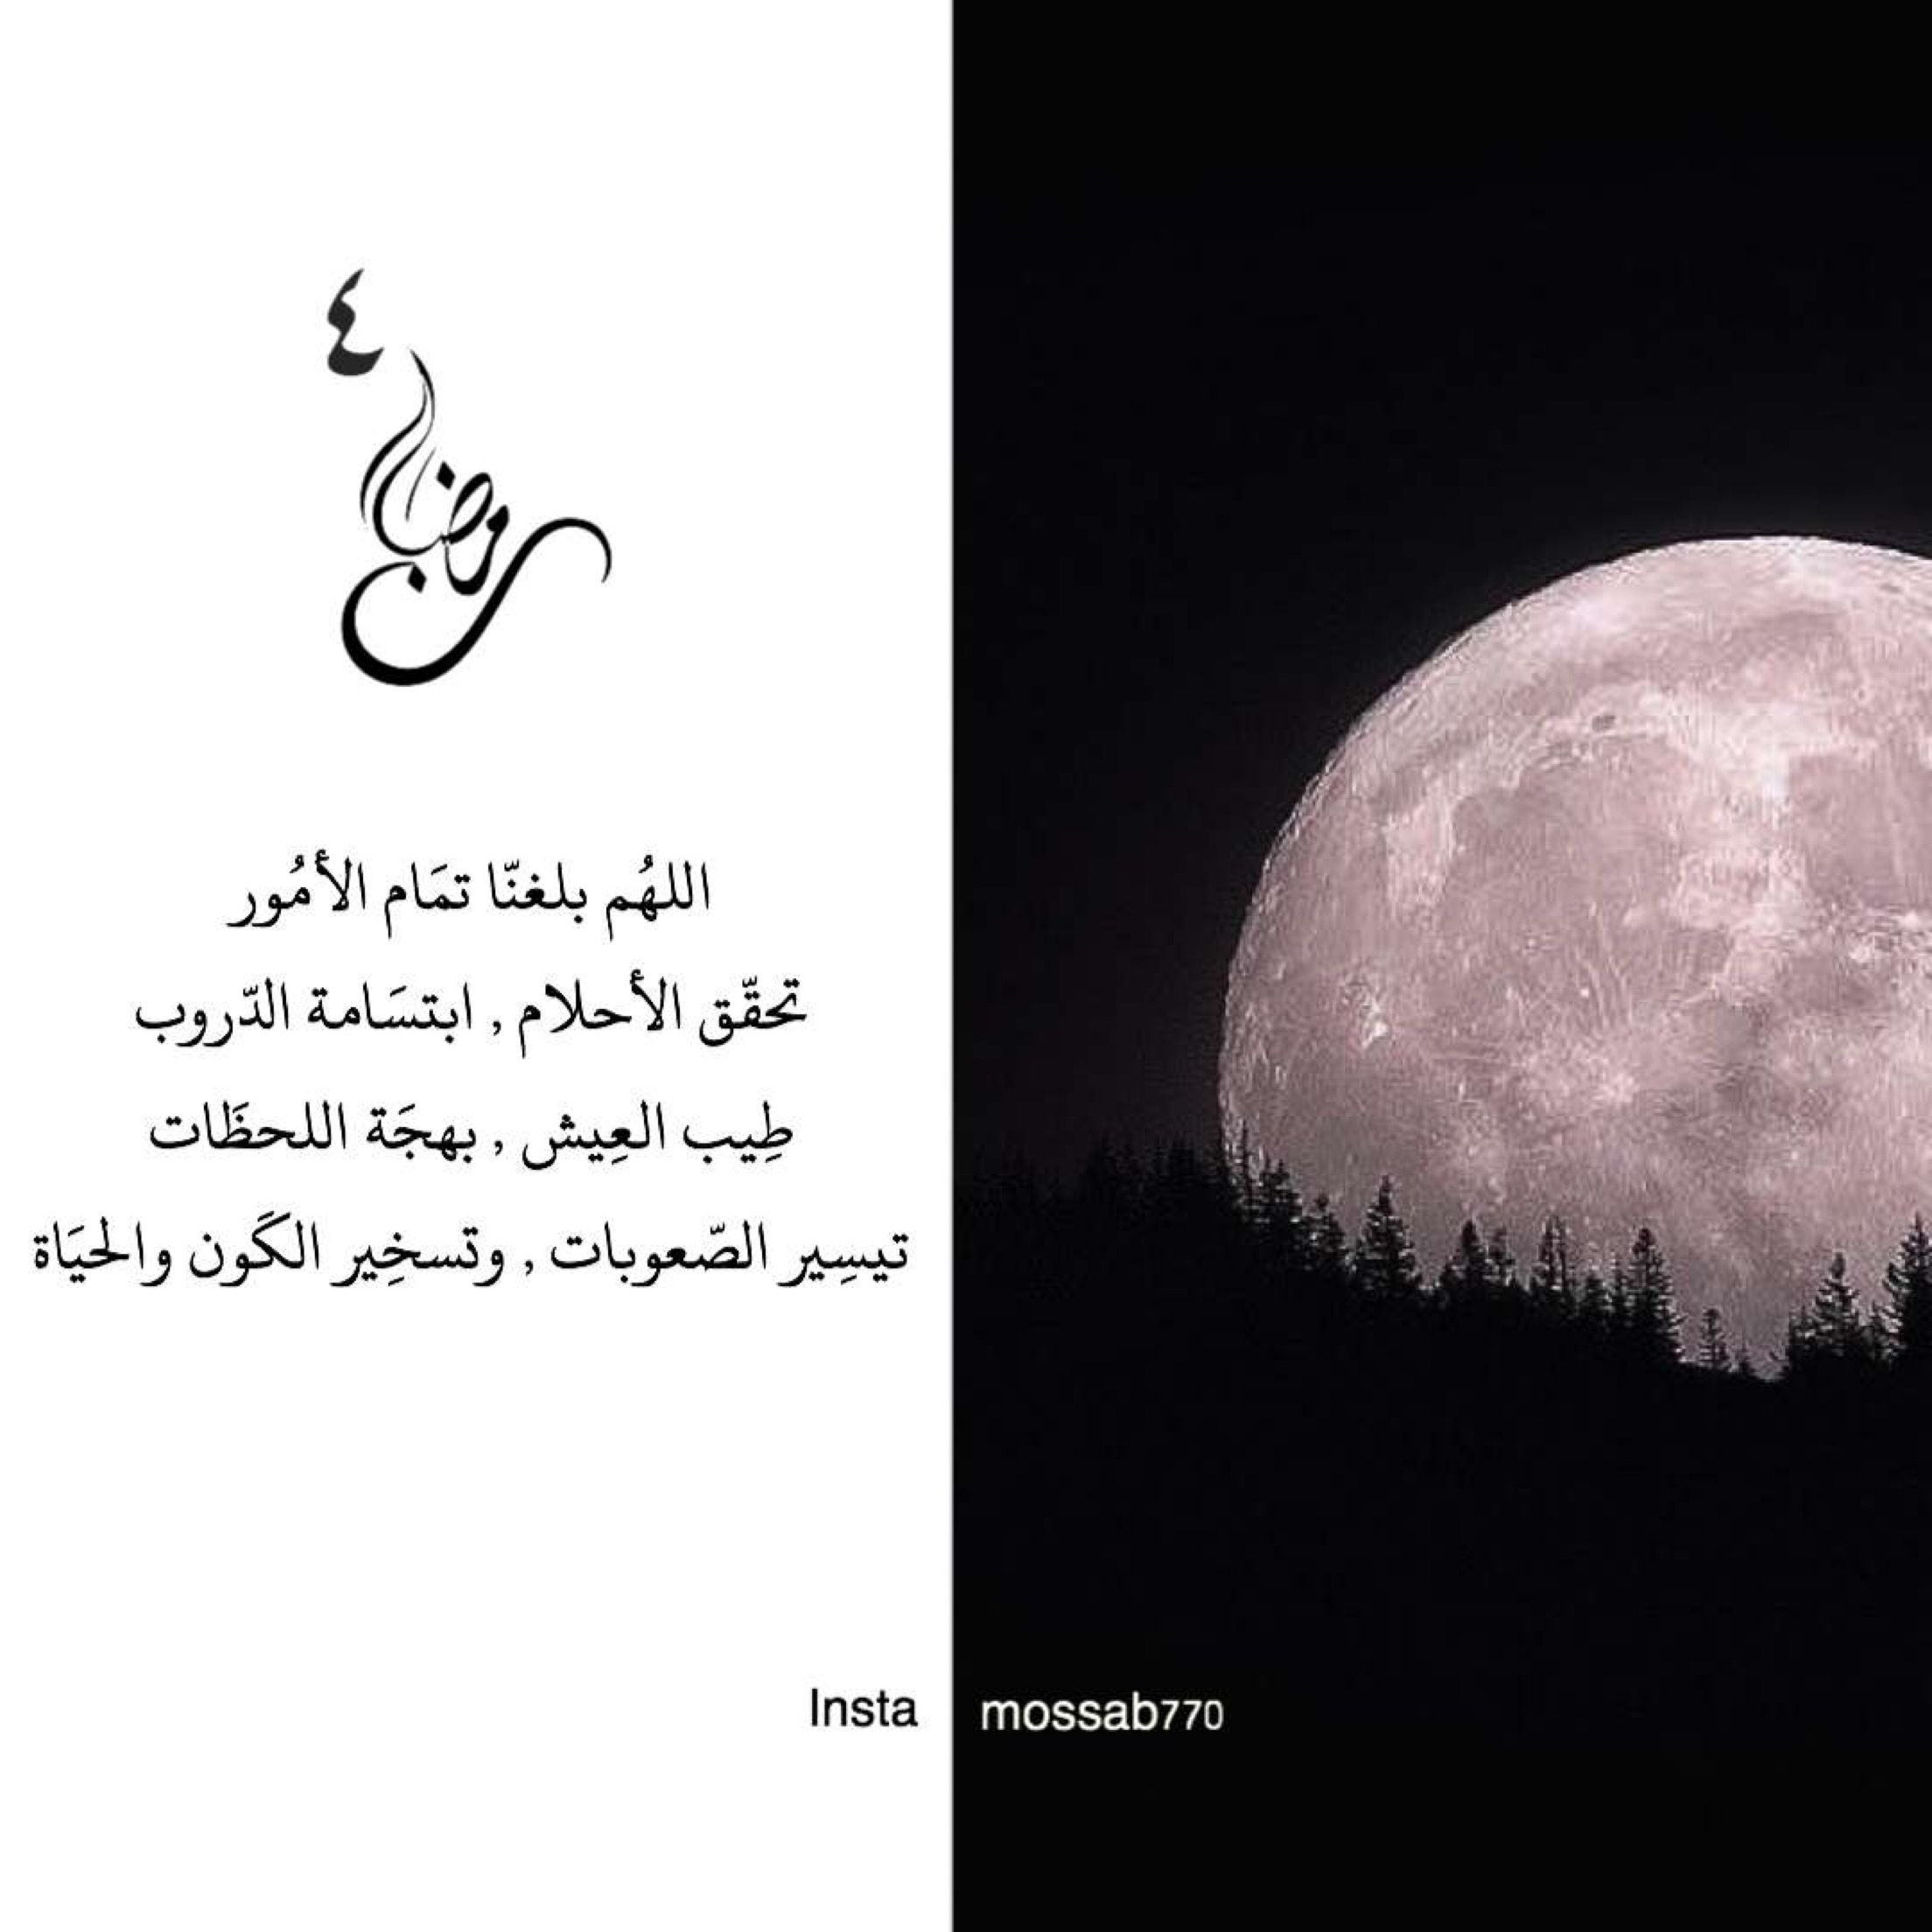 Pin By Mussab770 On رمضان Body Celestial Celestial Bodies